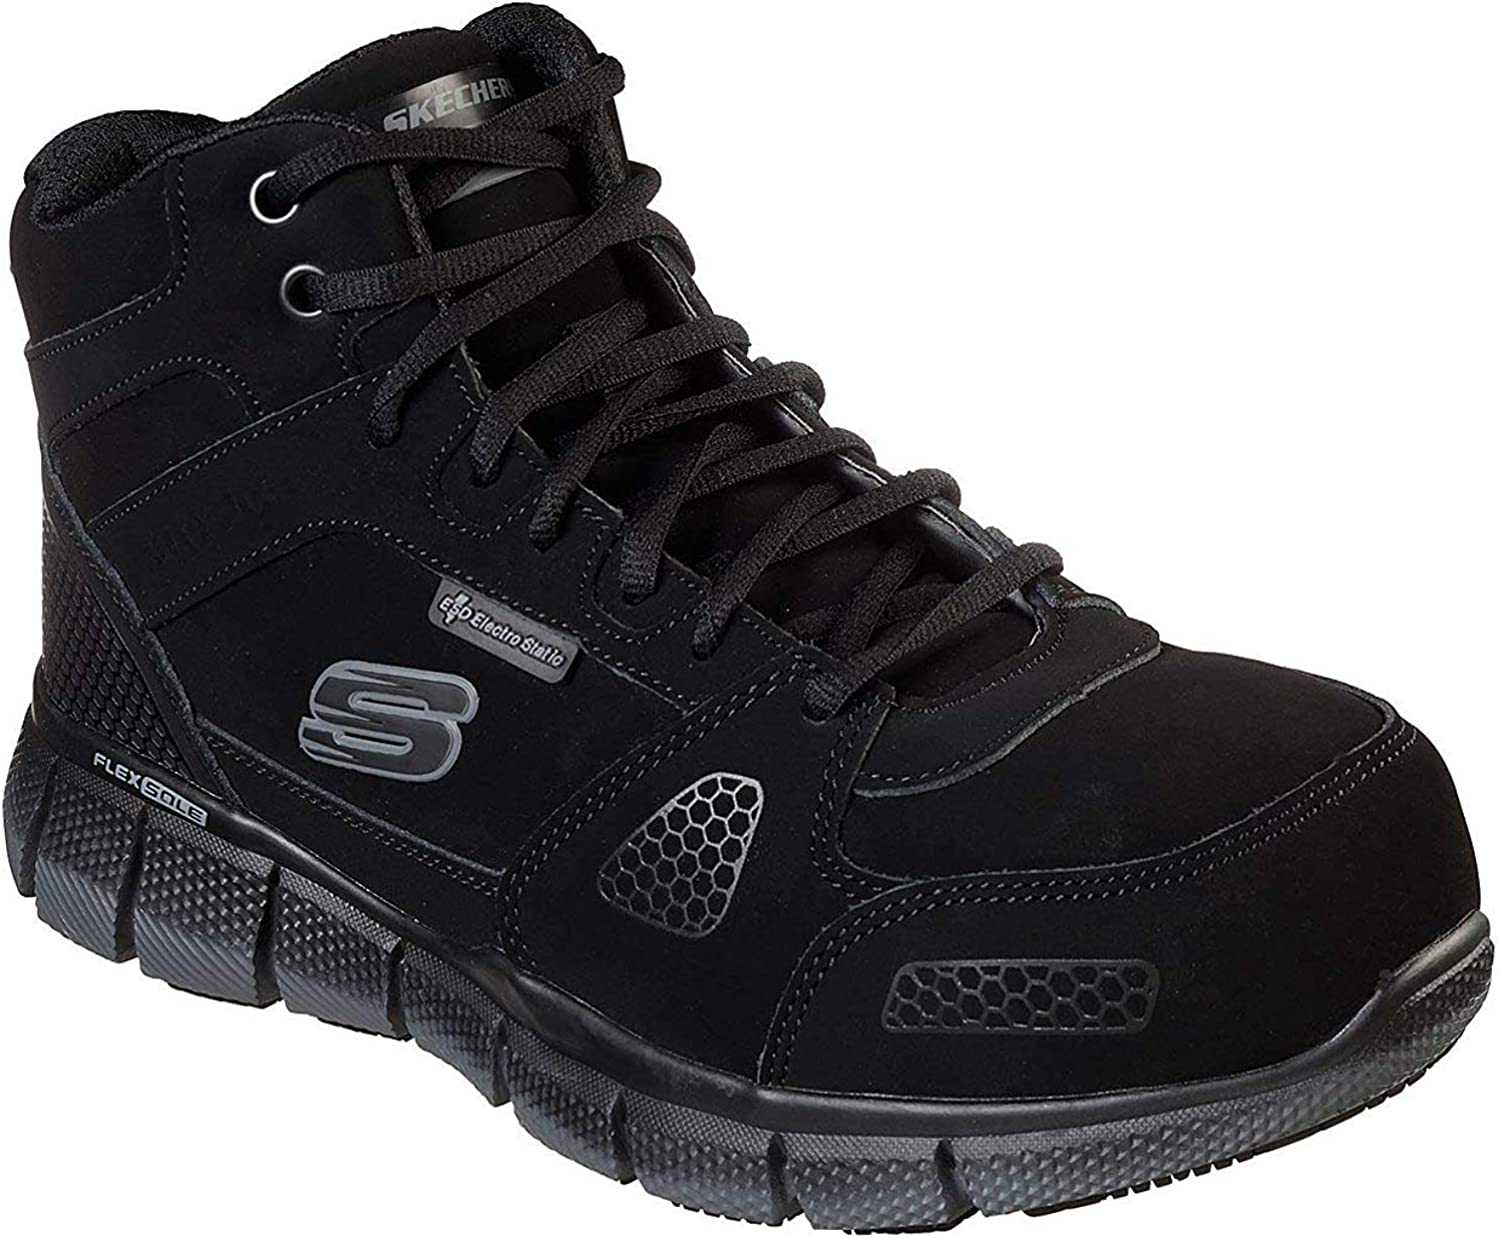 Skechers Work Telfin Penticton ESD Alloy Safety Toe Mens High Top Sneakers